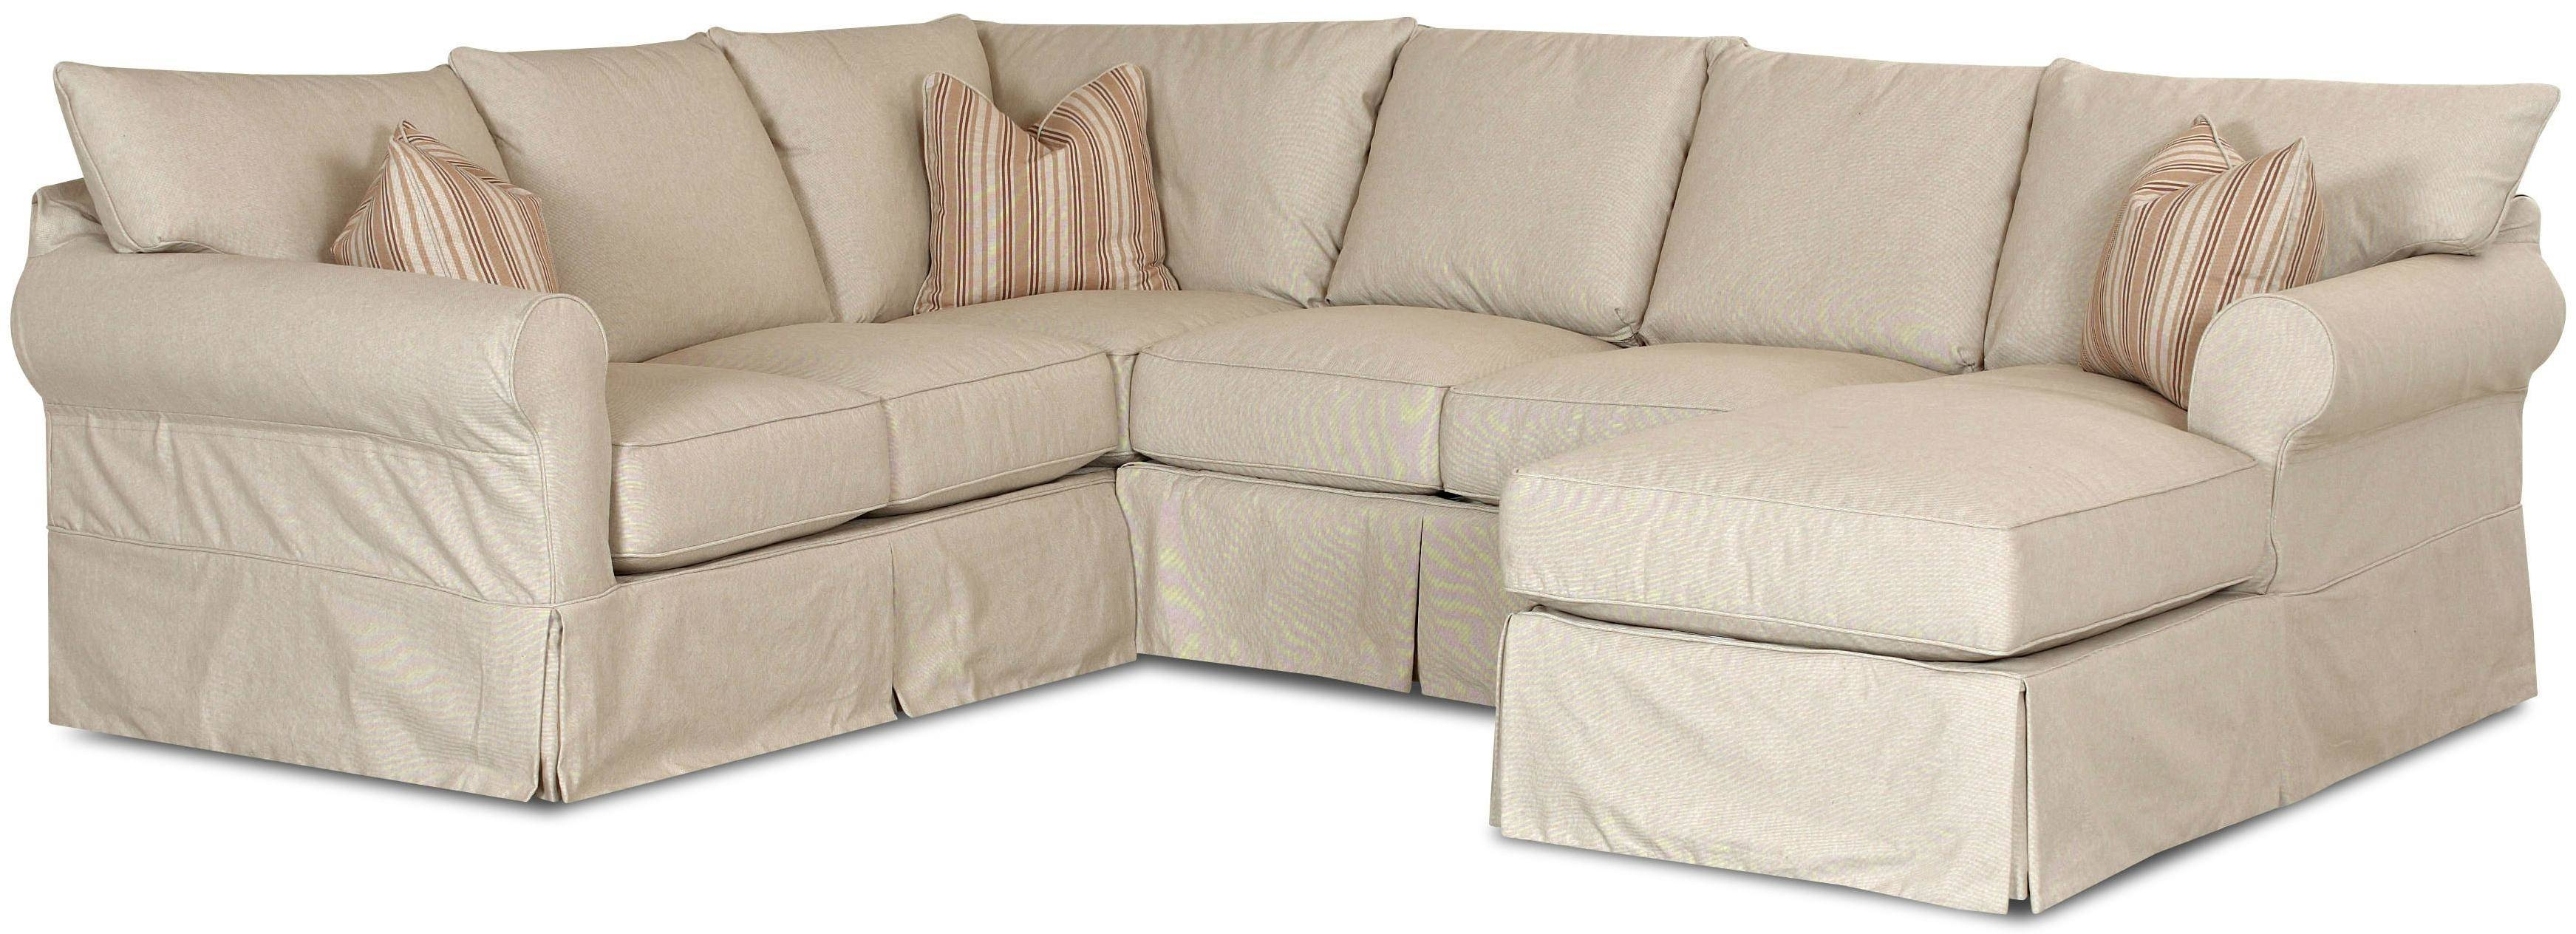 Sofas Center : Slipcoverednal Sofa Washable Sofas With Chaise with regard to Washable Sofas (Image 24 of 30)